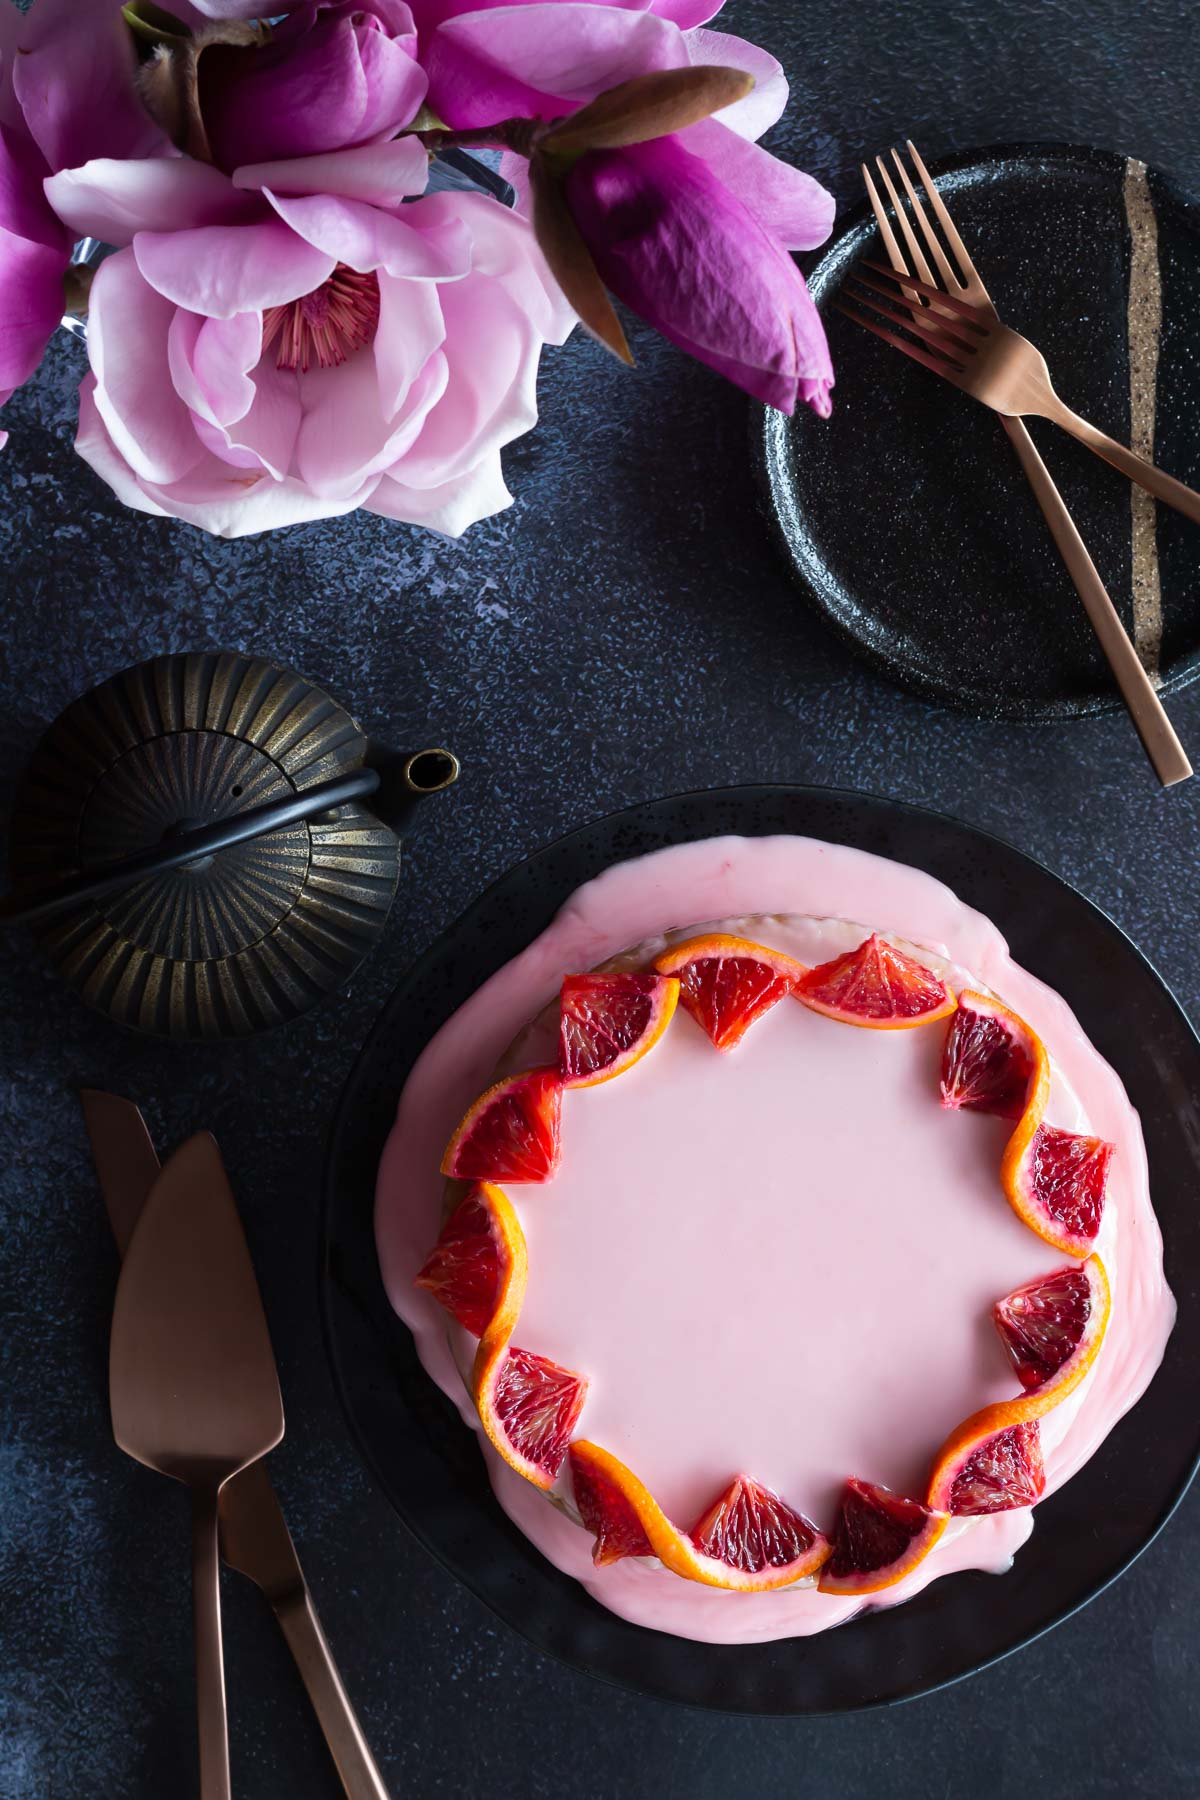 Blood orange cake ready to be enjoyed with a soulful cup of tea